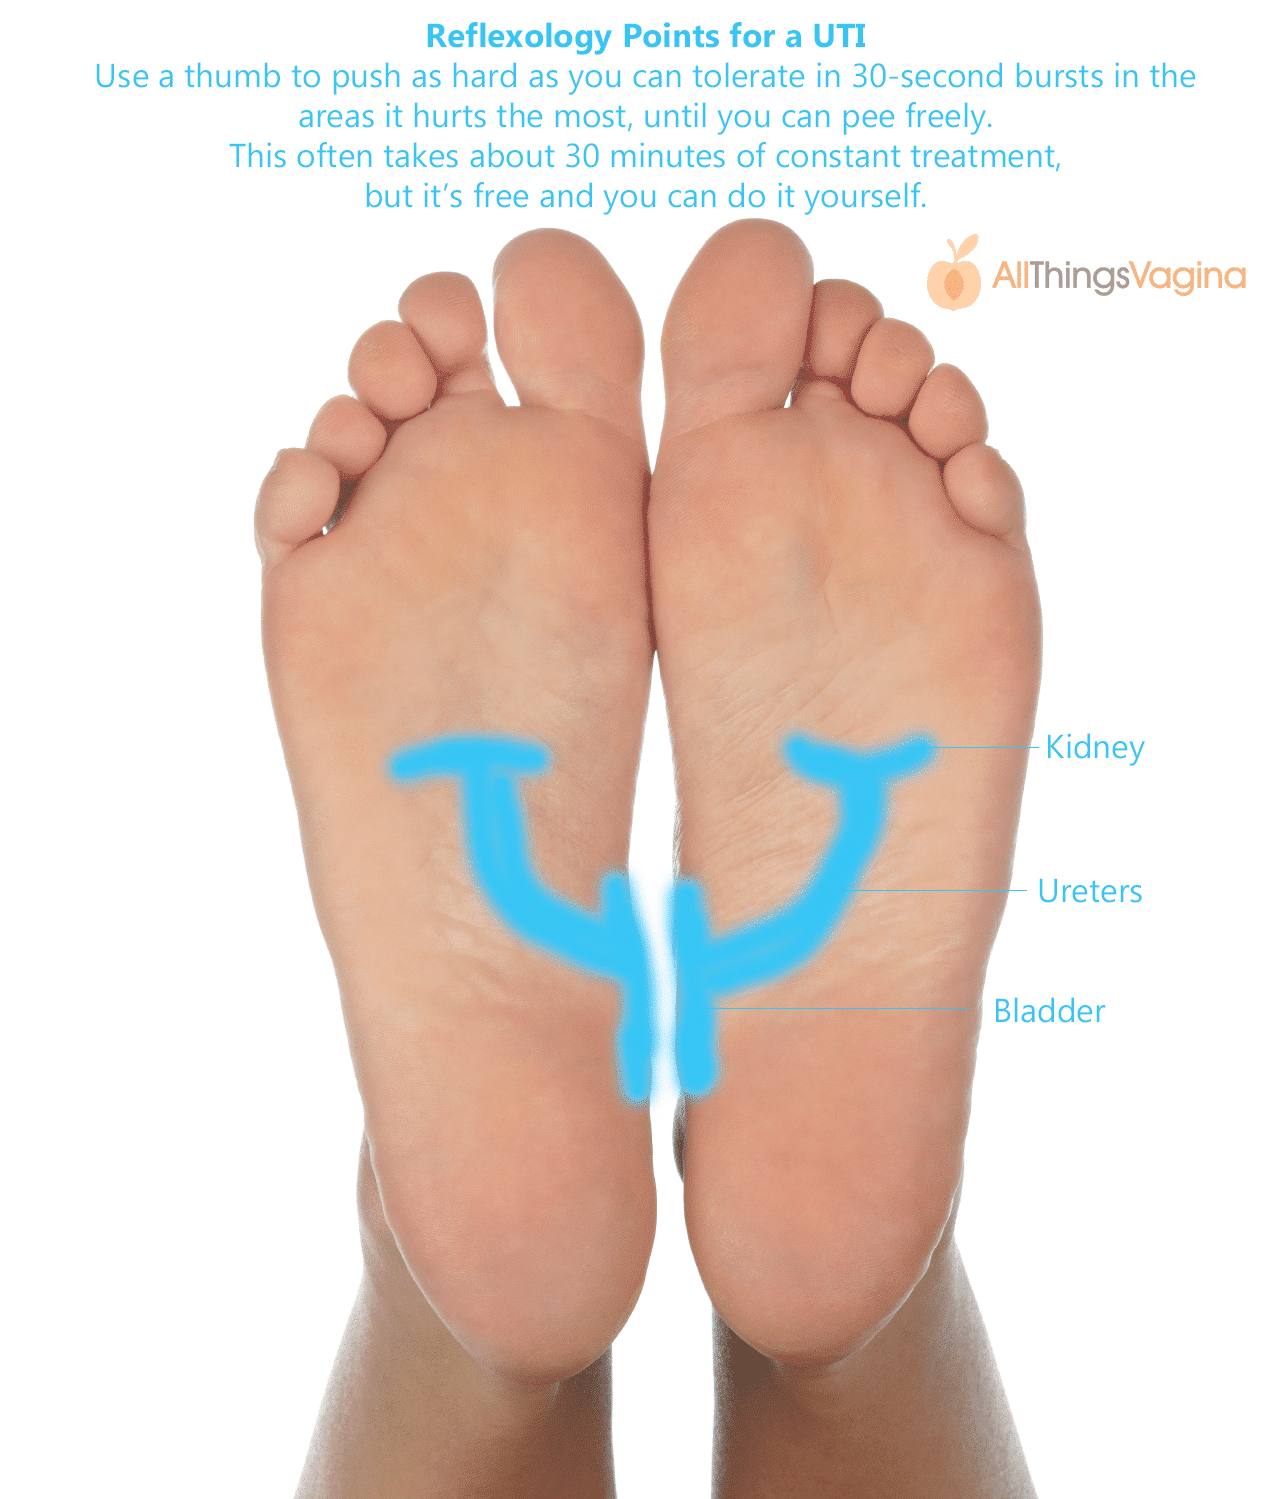 ATV Treat a UTI with Reflexology